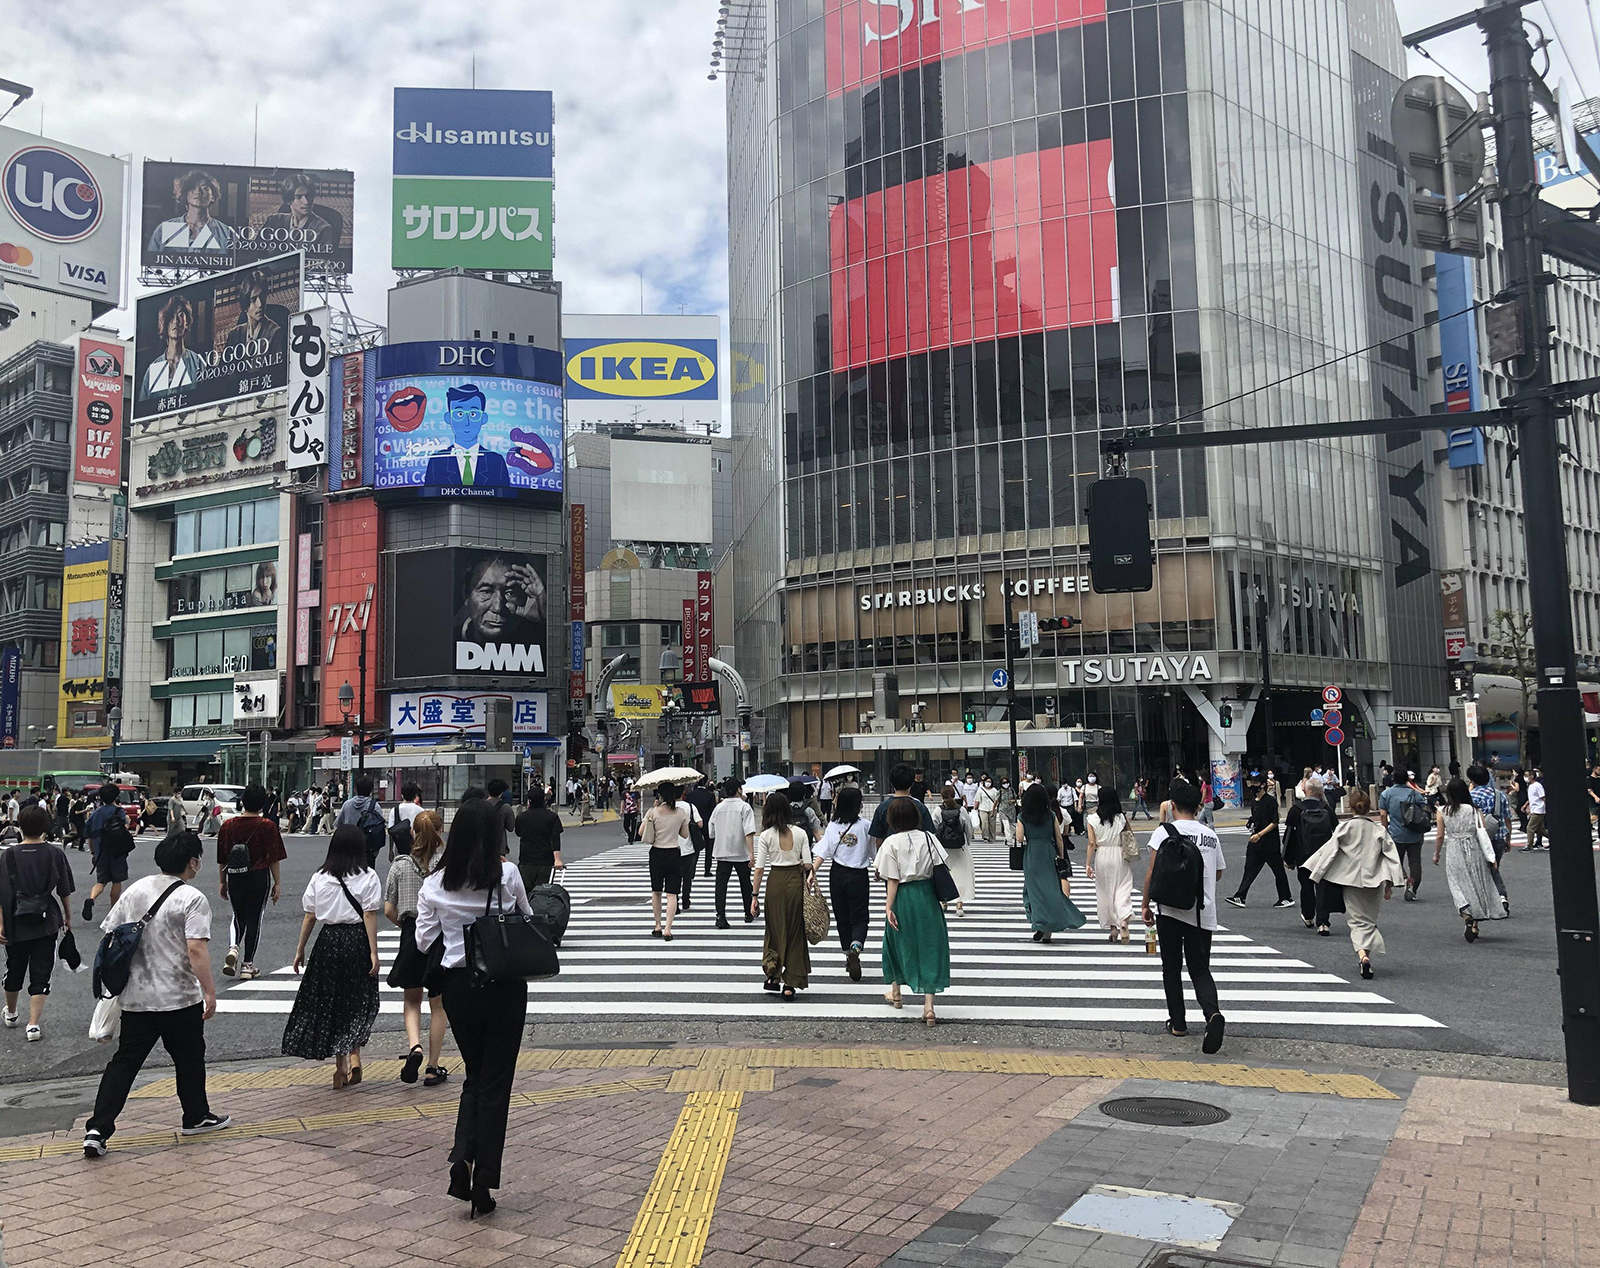 People cross an intersection in front of Shibuya Station amid the coronavirus outbreak in Tokyo, on September 10.